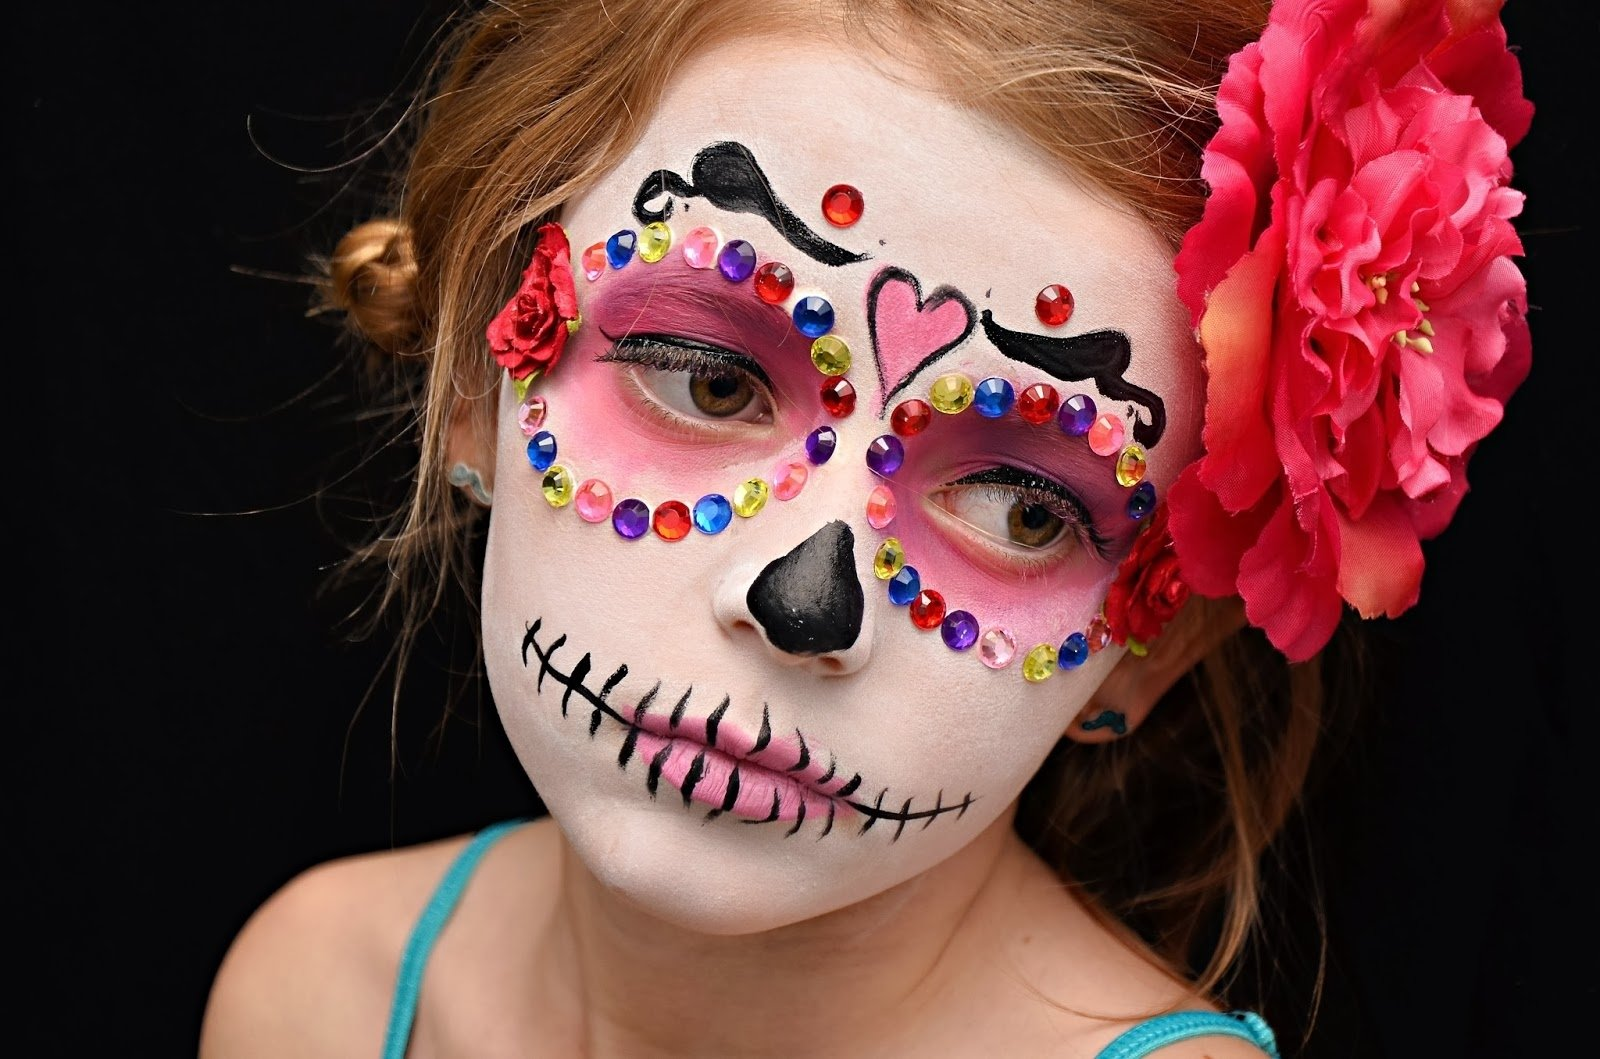 10 Wonderful Dia De Los Muertos Costumes Ideas a fun dia de los muertos make over photo shoot party and the kids 3